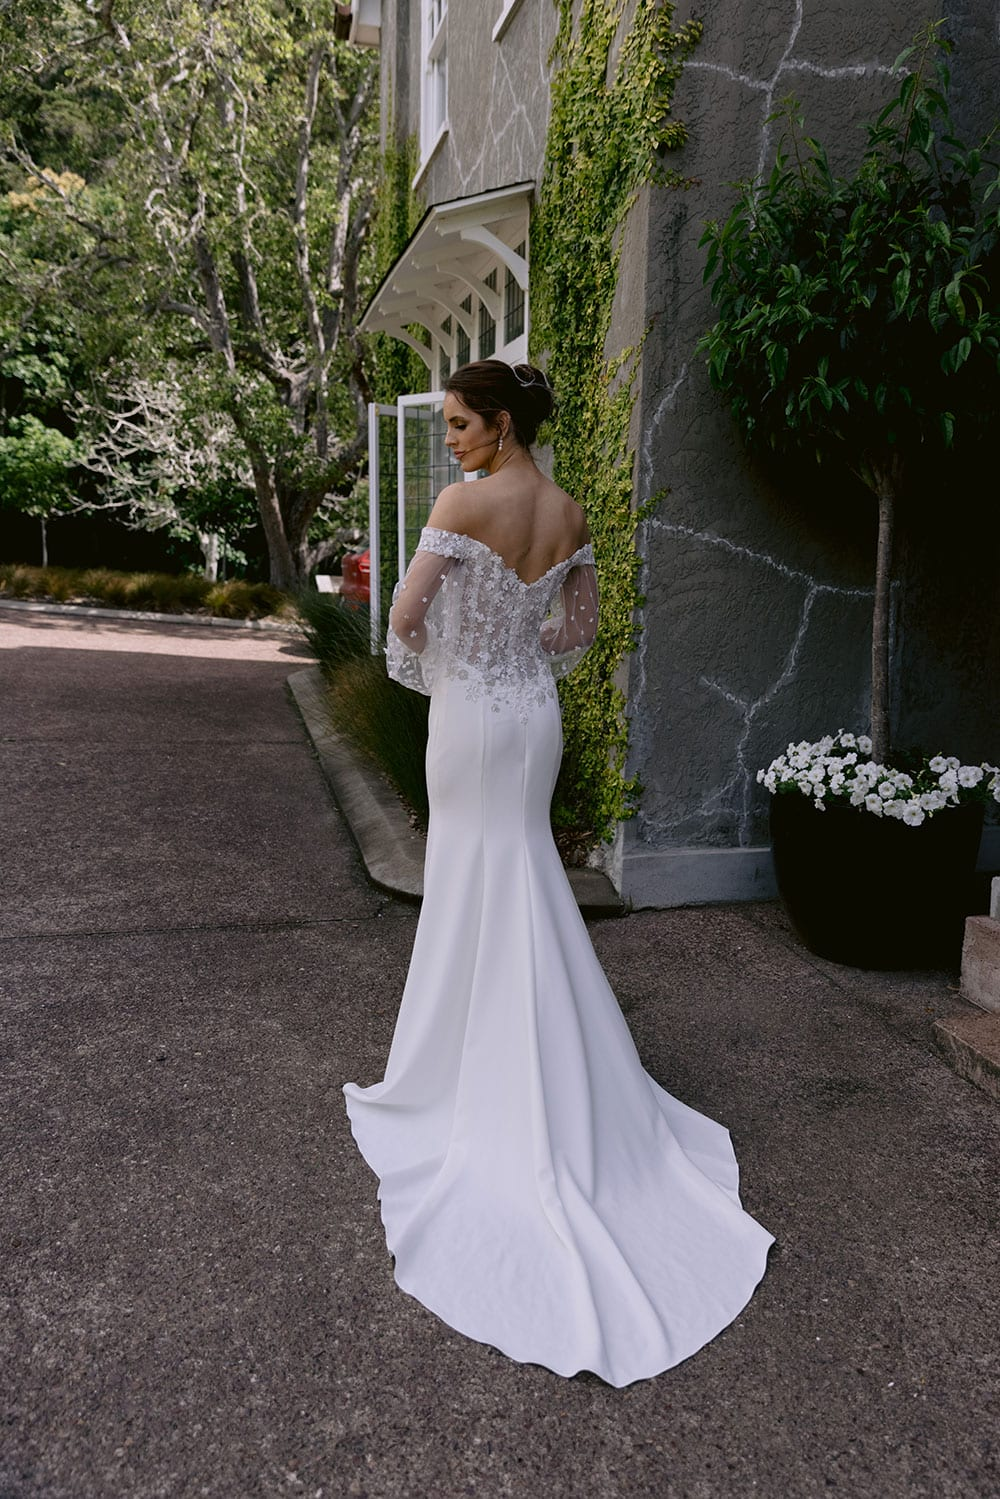 Chloe Wedding gown from Vinka Design - Wedding gown with 3D embellished platinum and ivory flower lace, complemented by stunning off-shoulder straps. A semi-sheer bodice trails into a gorgeous stretch crepe skirt that hugs the figure in all the right places. Model wearing gown in gardens with train.